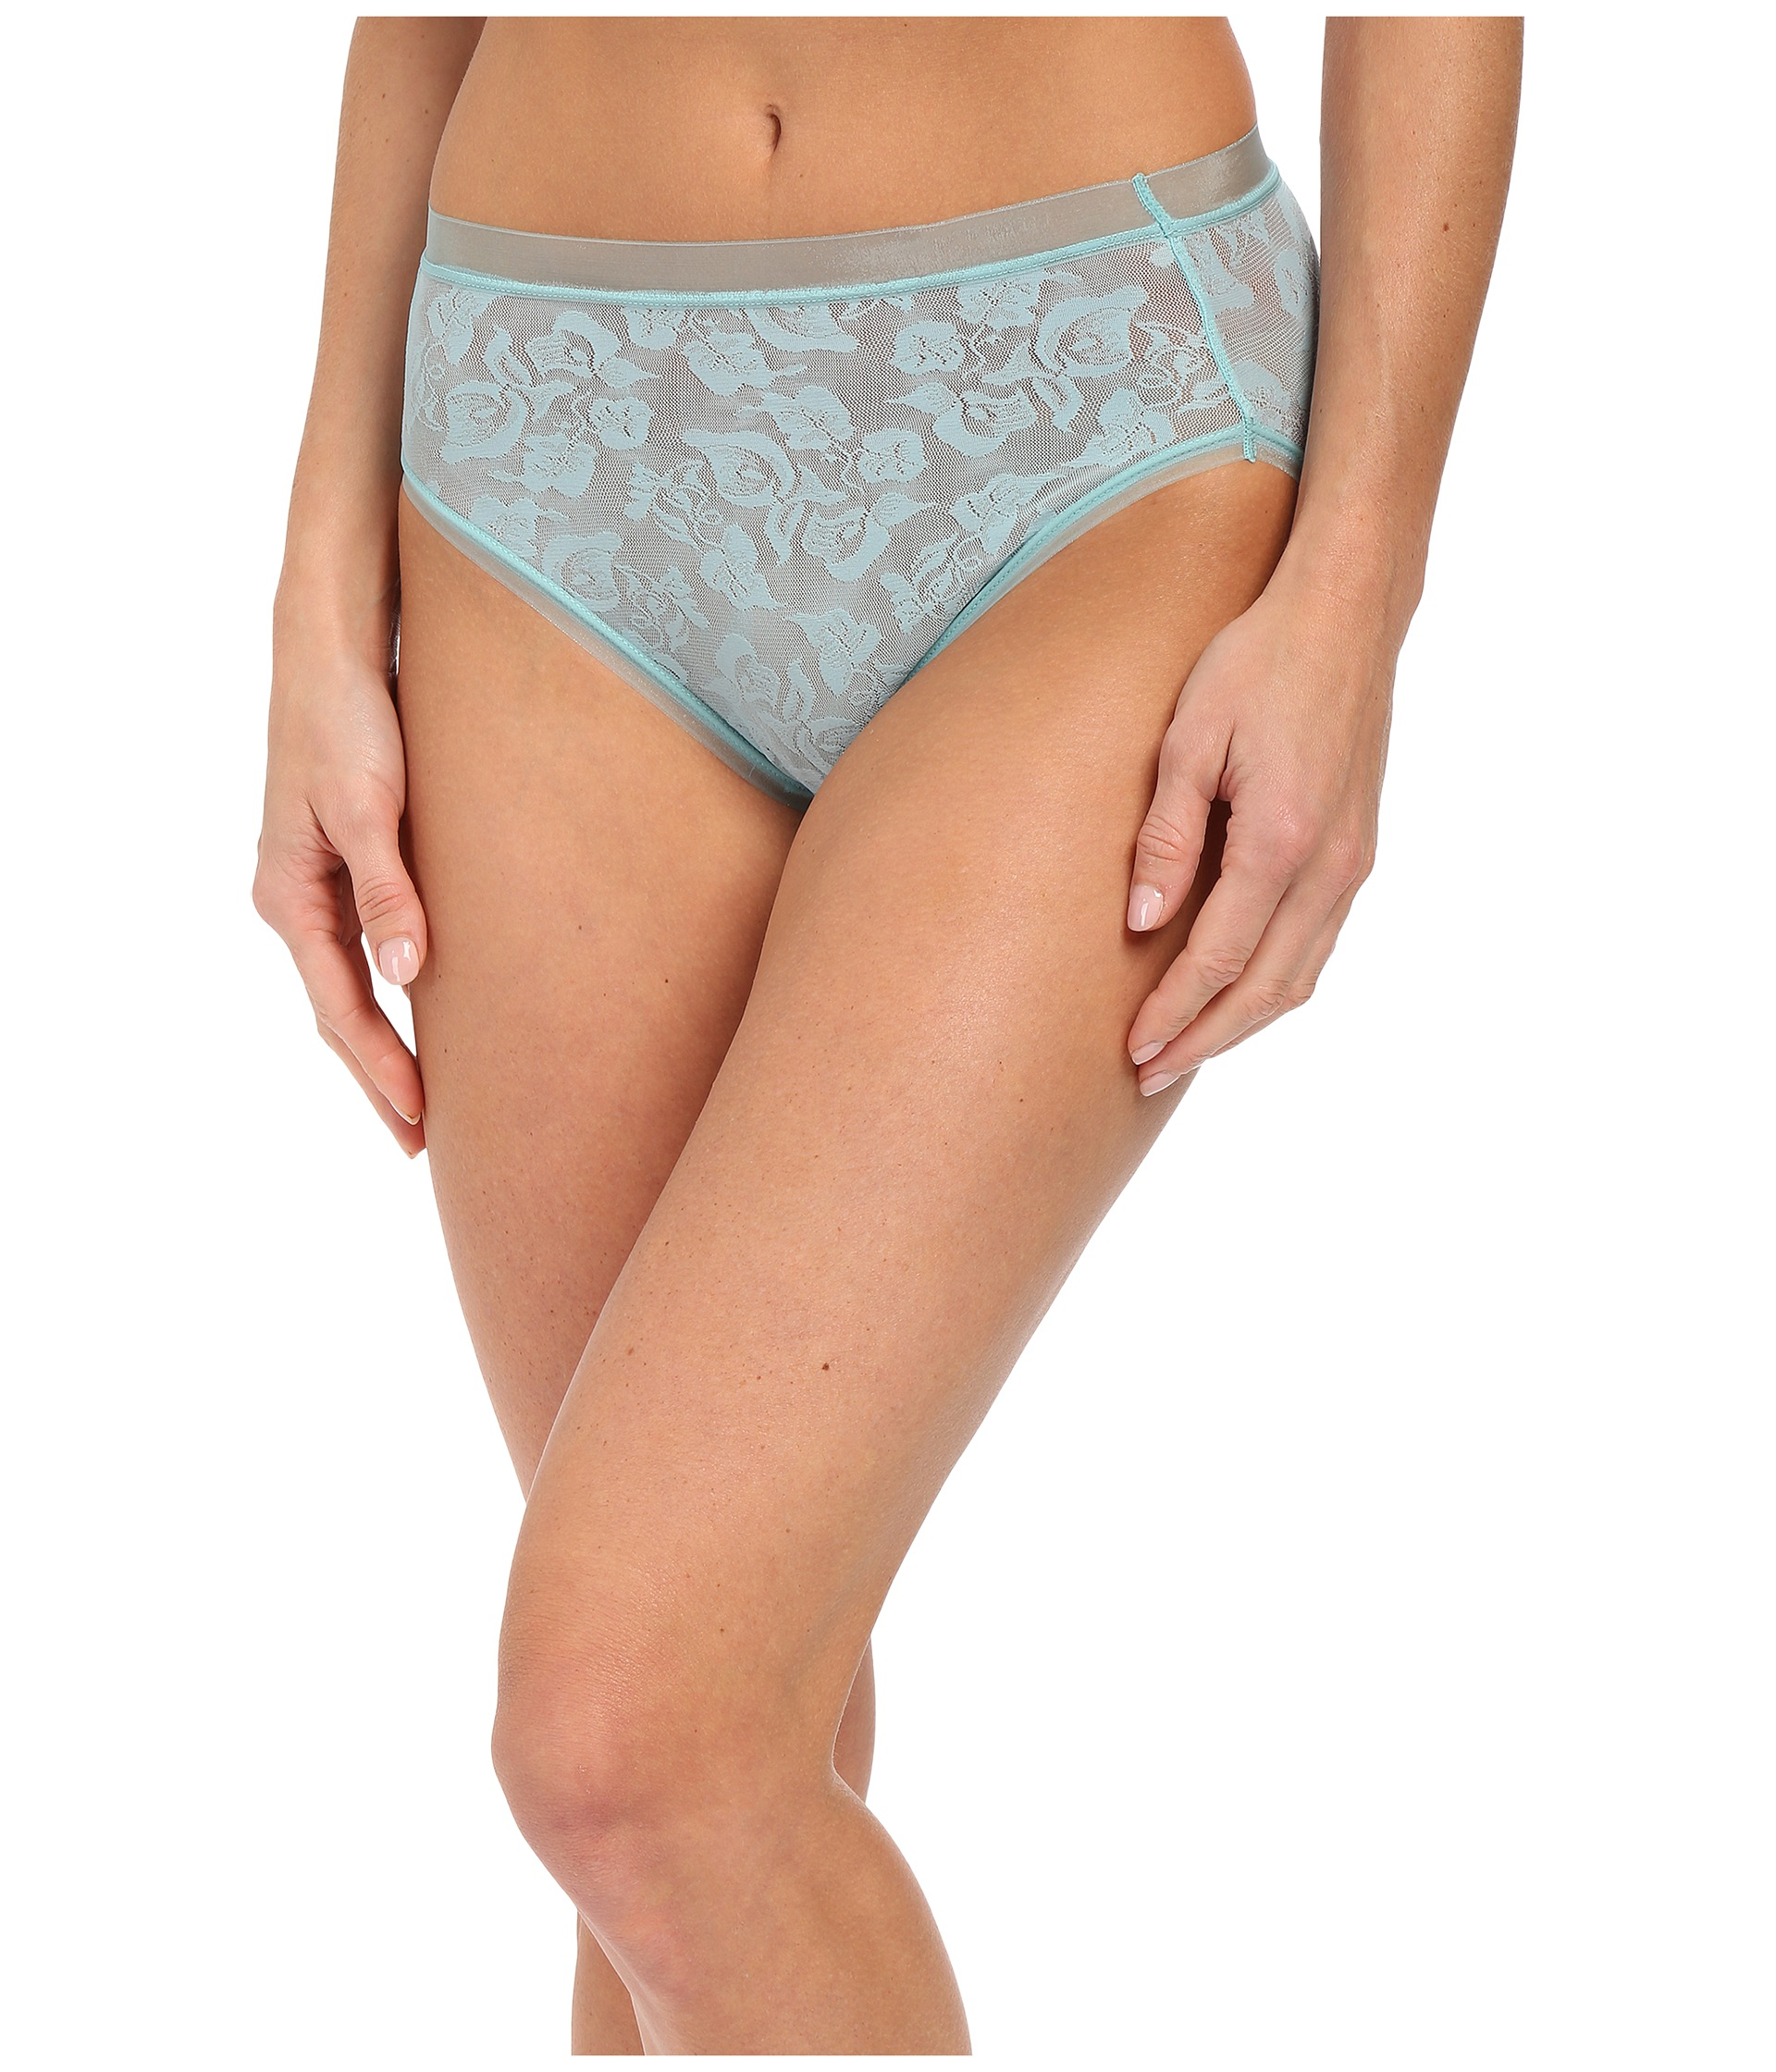 Wacoal manufactures an extensive size range starting from a petite 32AA to a full size 44H. From full cups to supportive cut and sewn bras, T-shirt, demi, and sports bras, and strapless and convertible bras - Wacoal has comfortable, supportive and beautiful lingerie wardrobe solutions for all women.